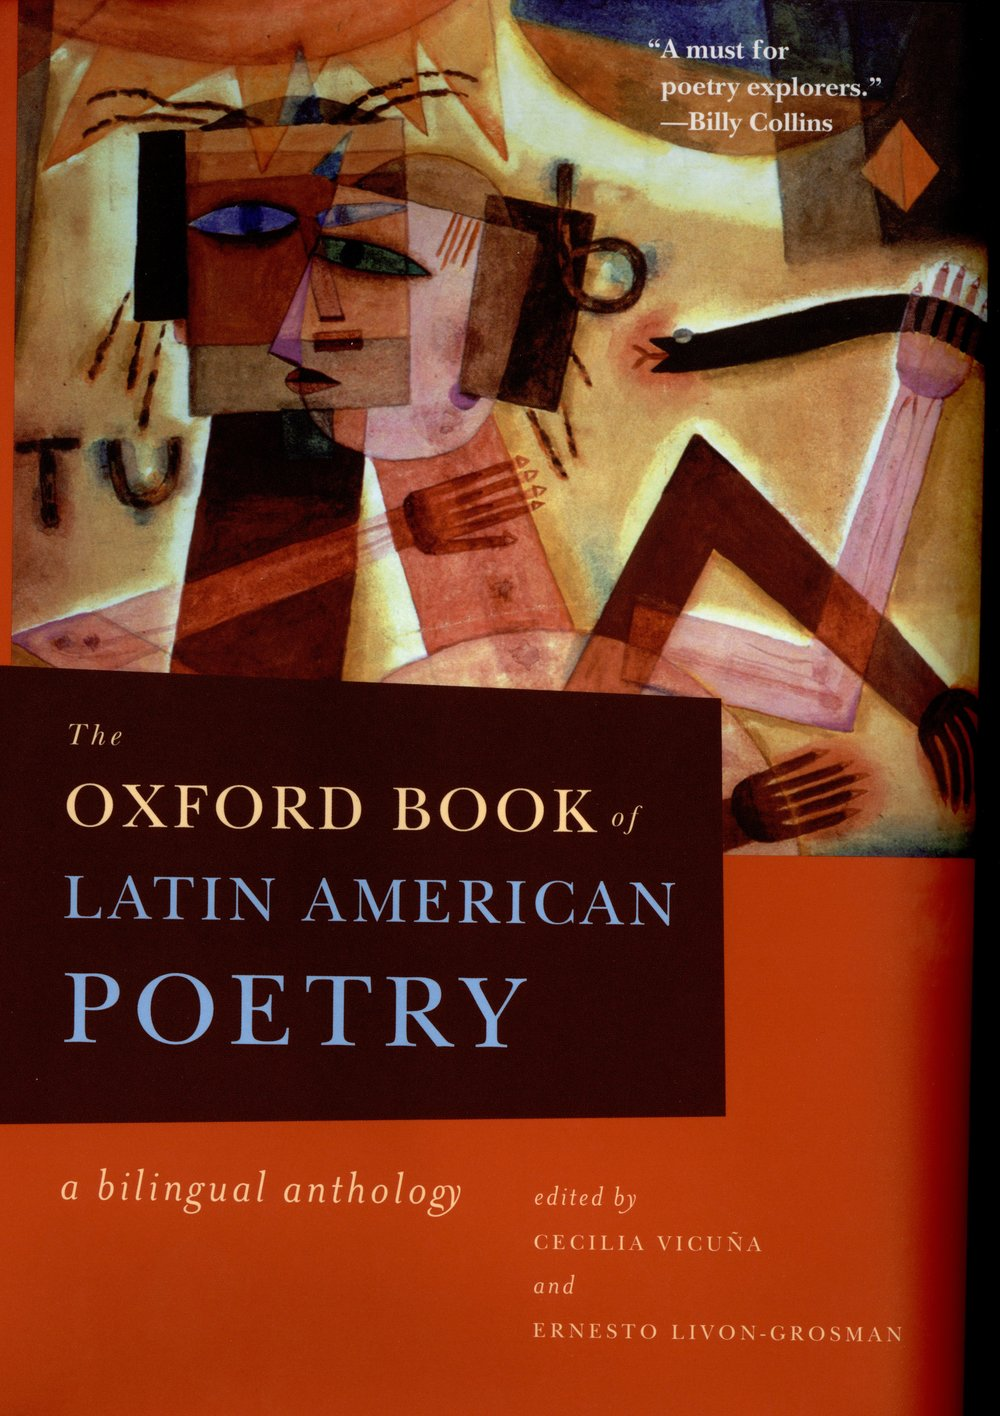 The anthology includes many divergent poetries, that may present readers with new and controversial perspectives. A work that documents the collective interest in language that has shaped the course of Latin American poetry for the past five hundred years.